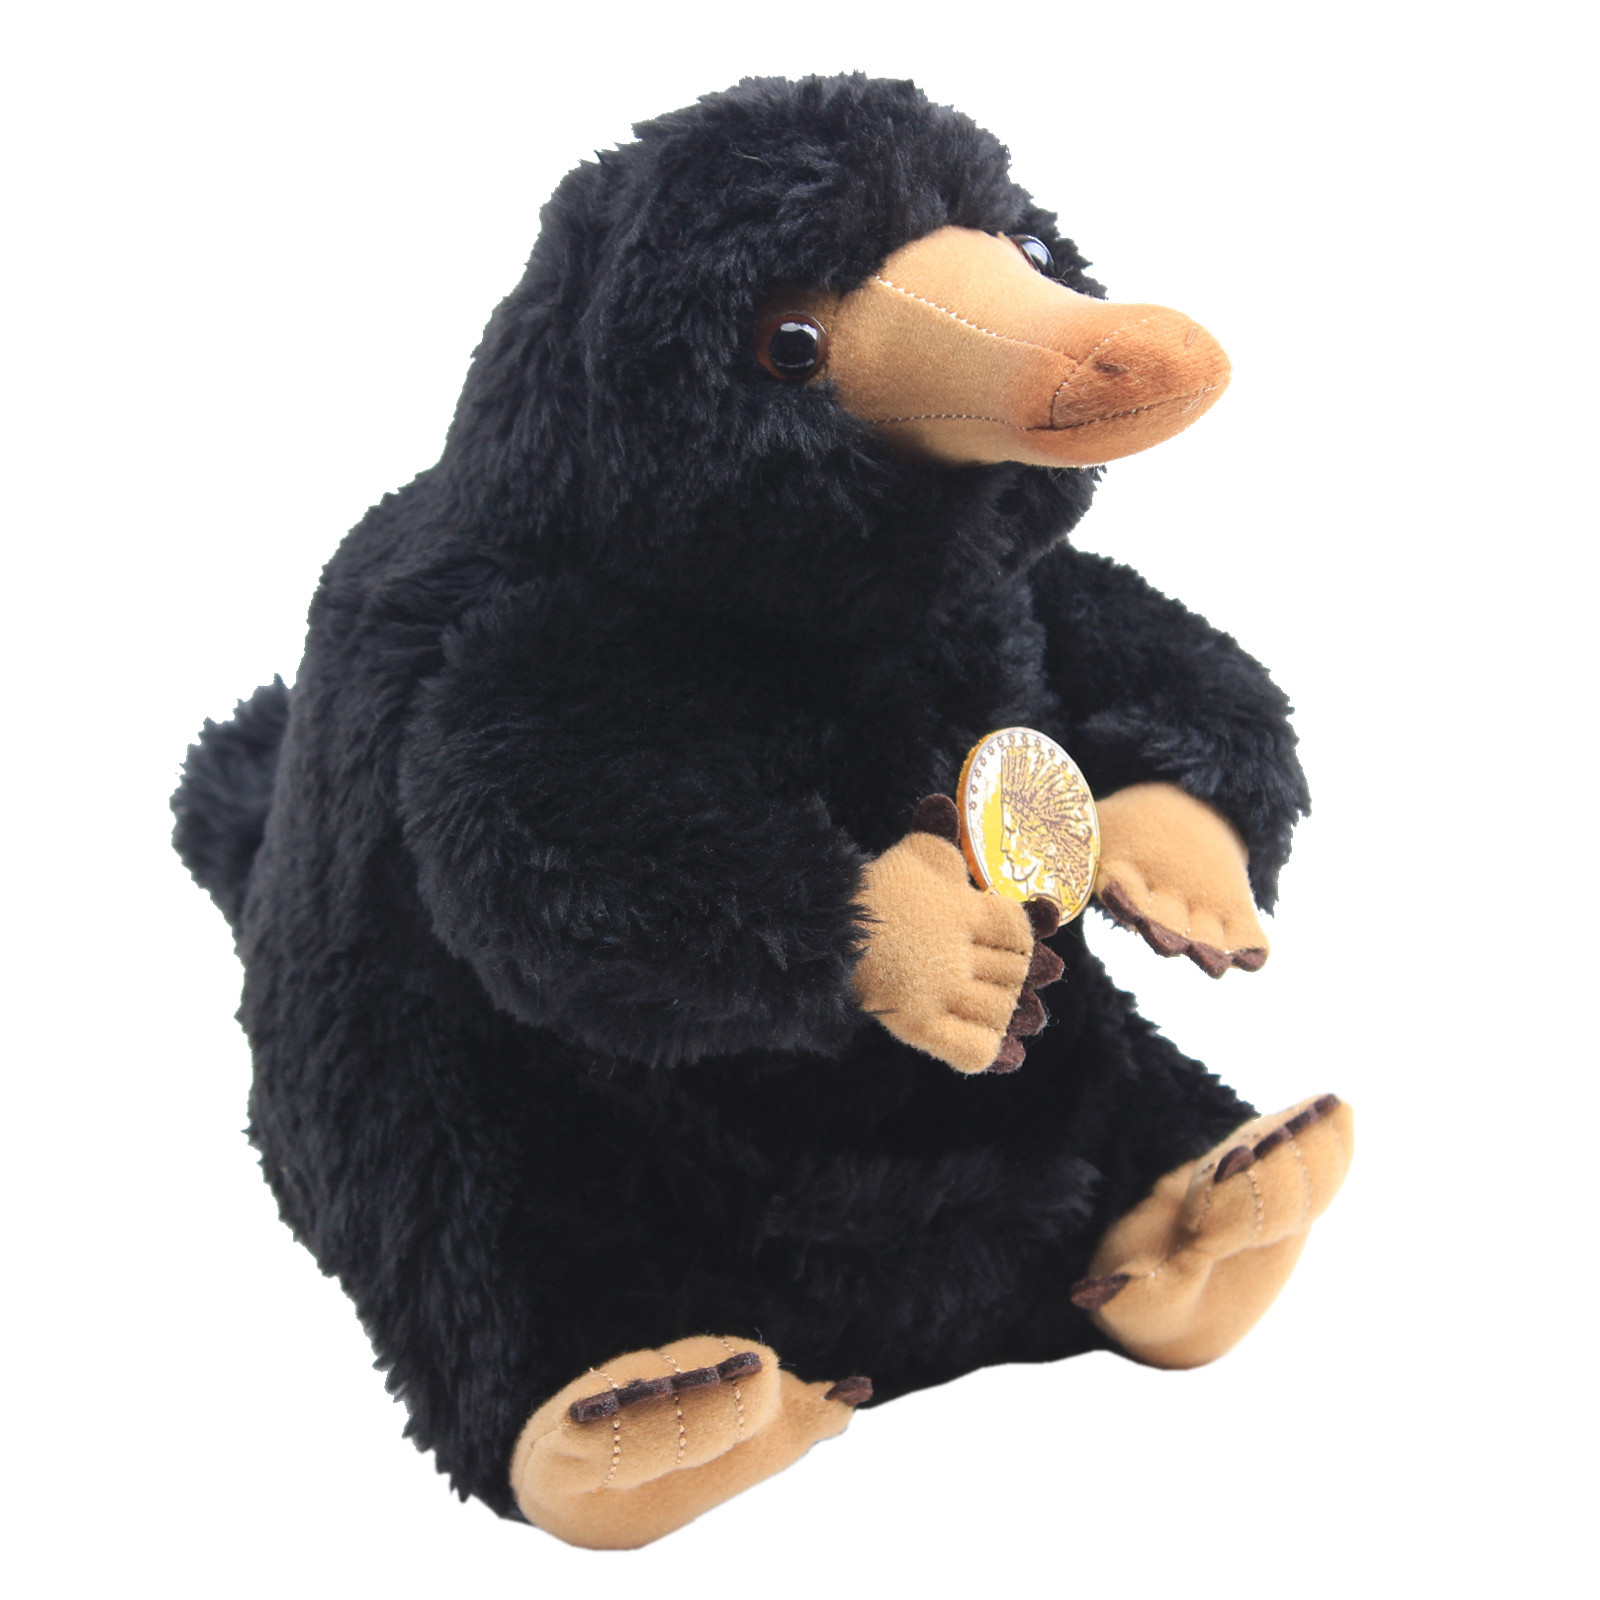 20 Cm Black Duckbills Plush Toys Peluche Fantastic Beasts And Where To Find Them Niffler Collector's Stuffed Toy Women Kids Gift